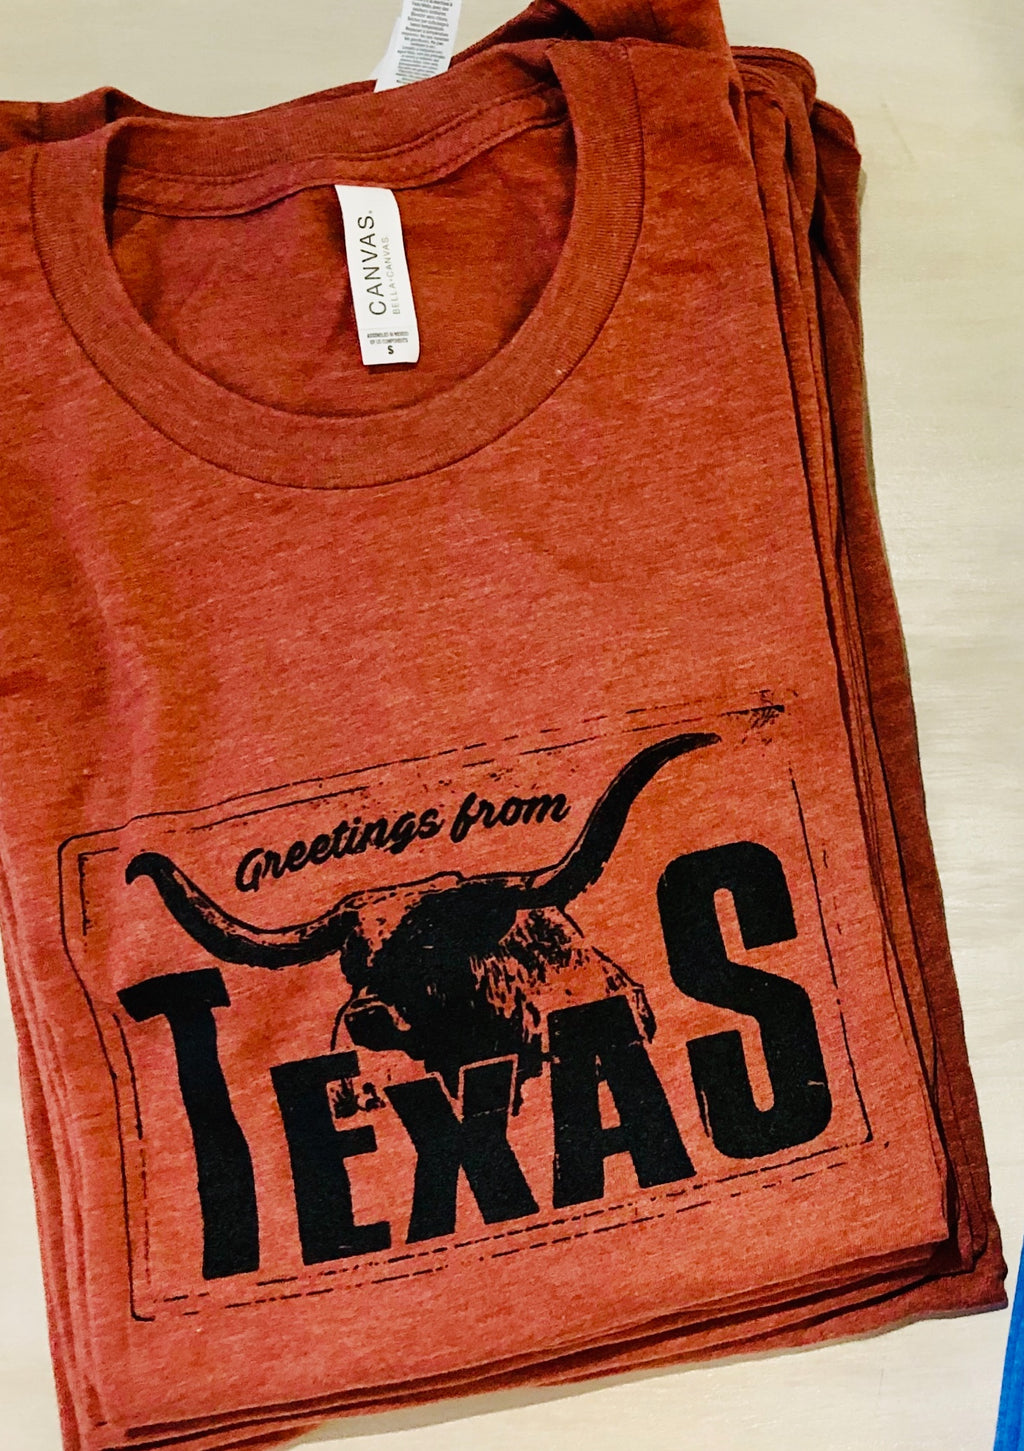 Greetings from Texas Tee